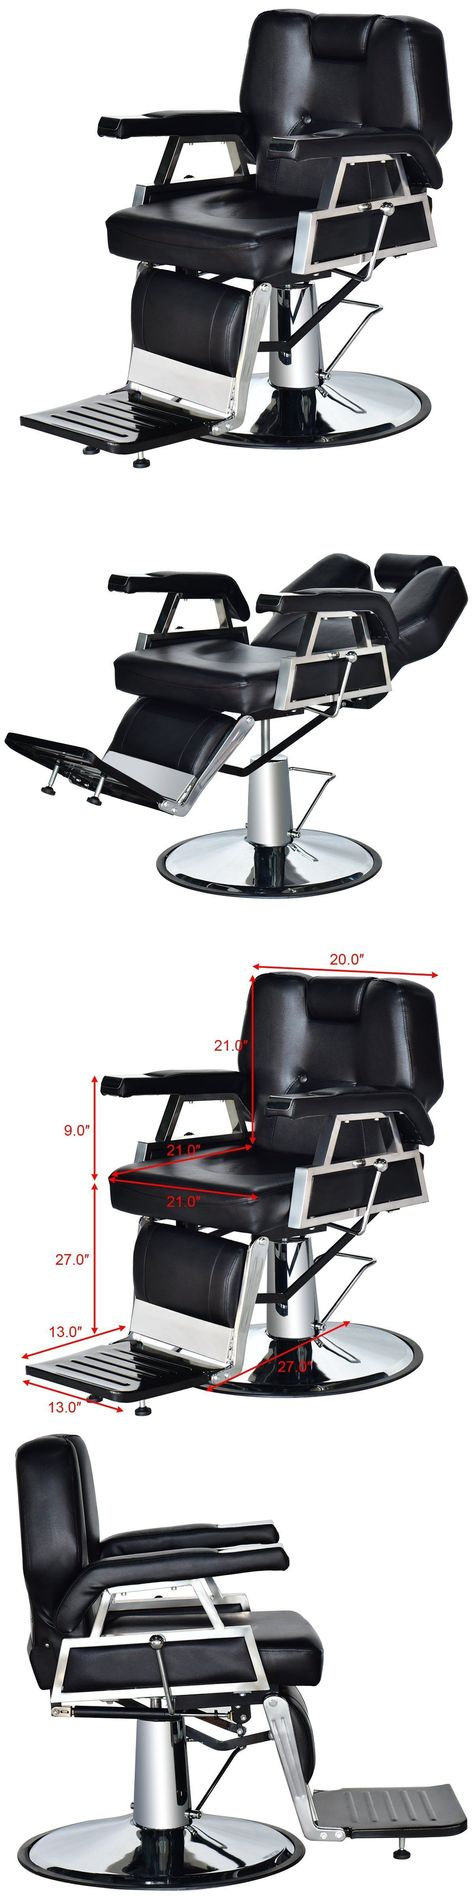 oukasfo chair ebay reclining salon hair of magnificent chairs